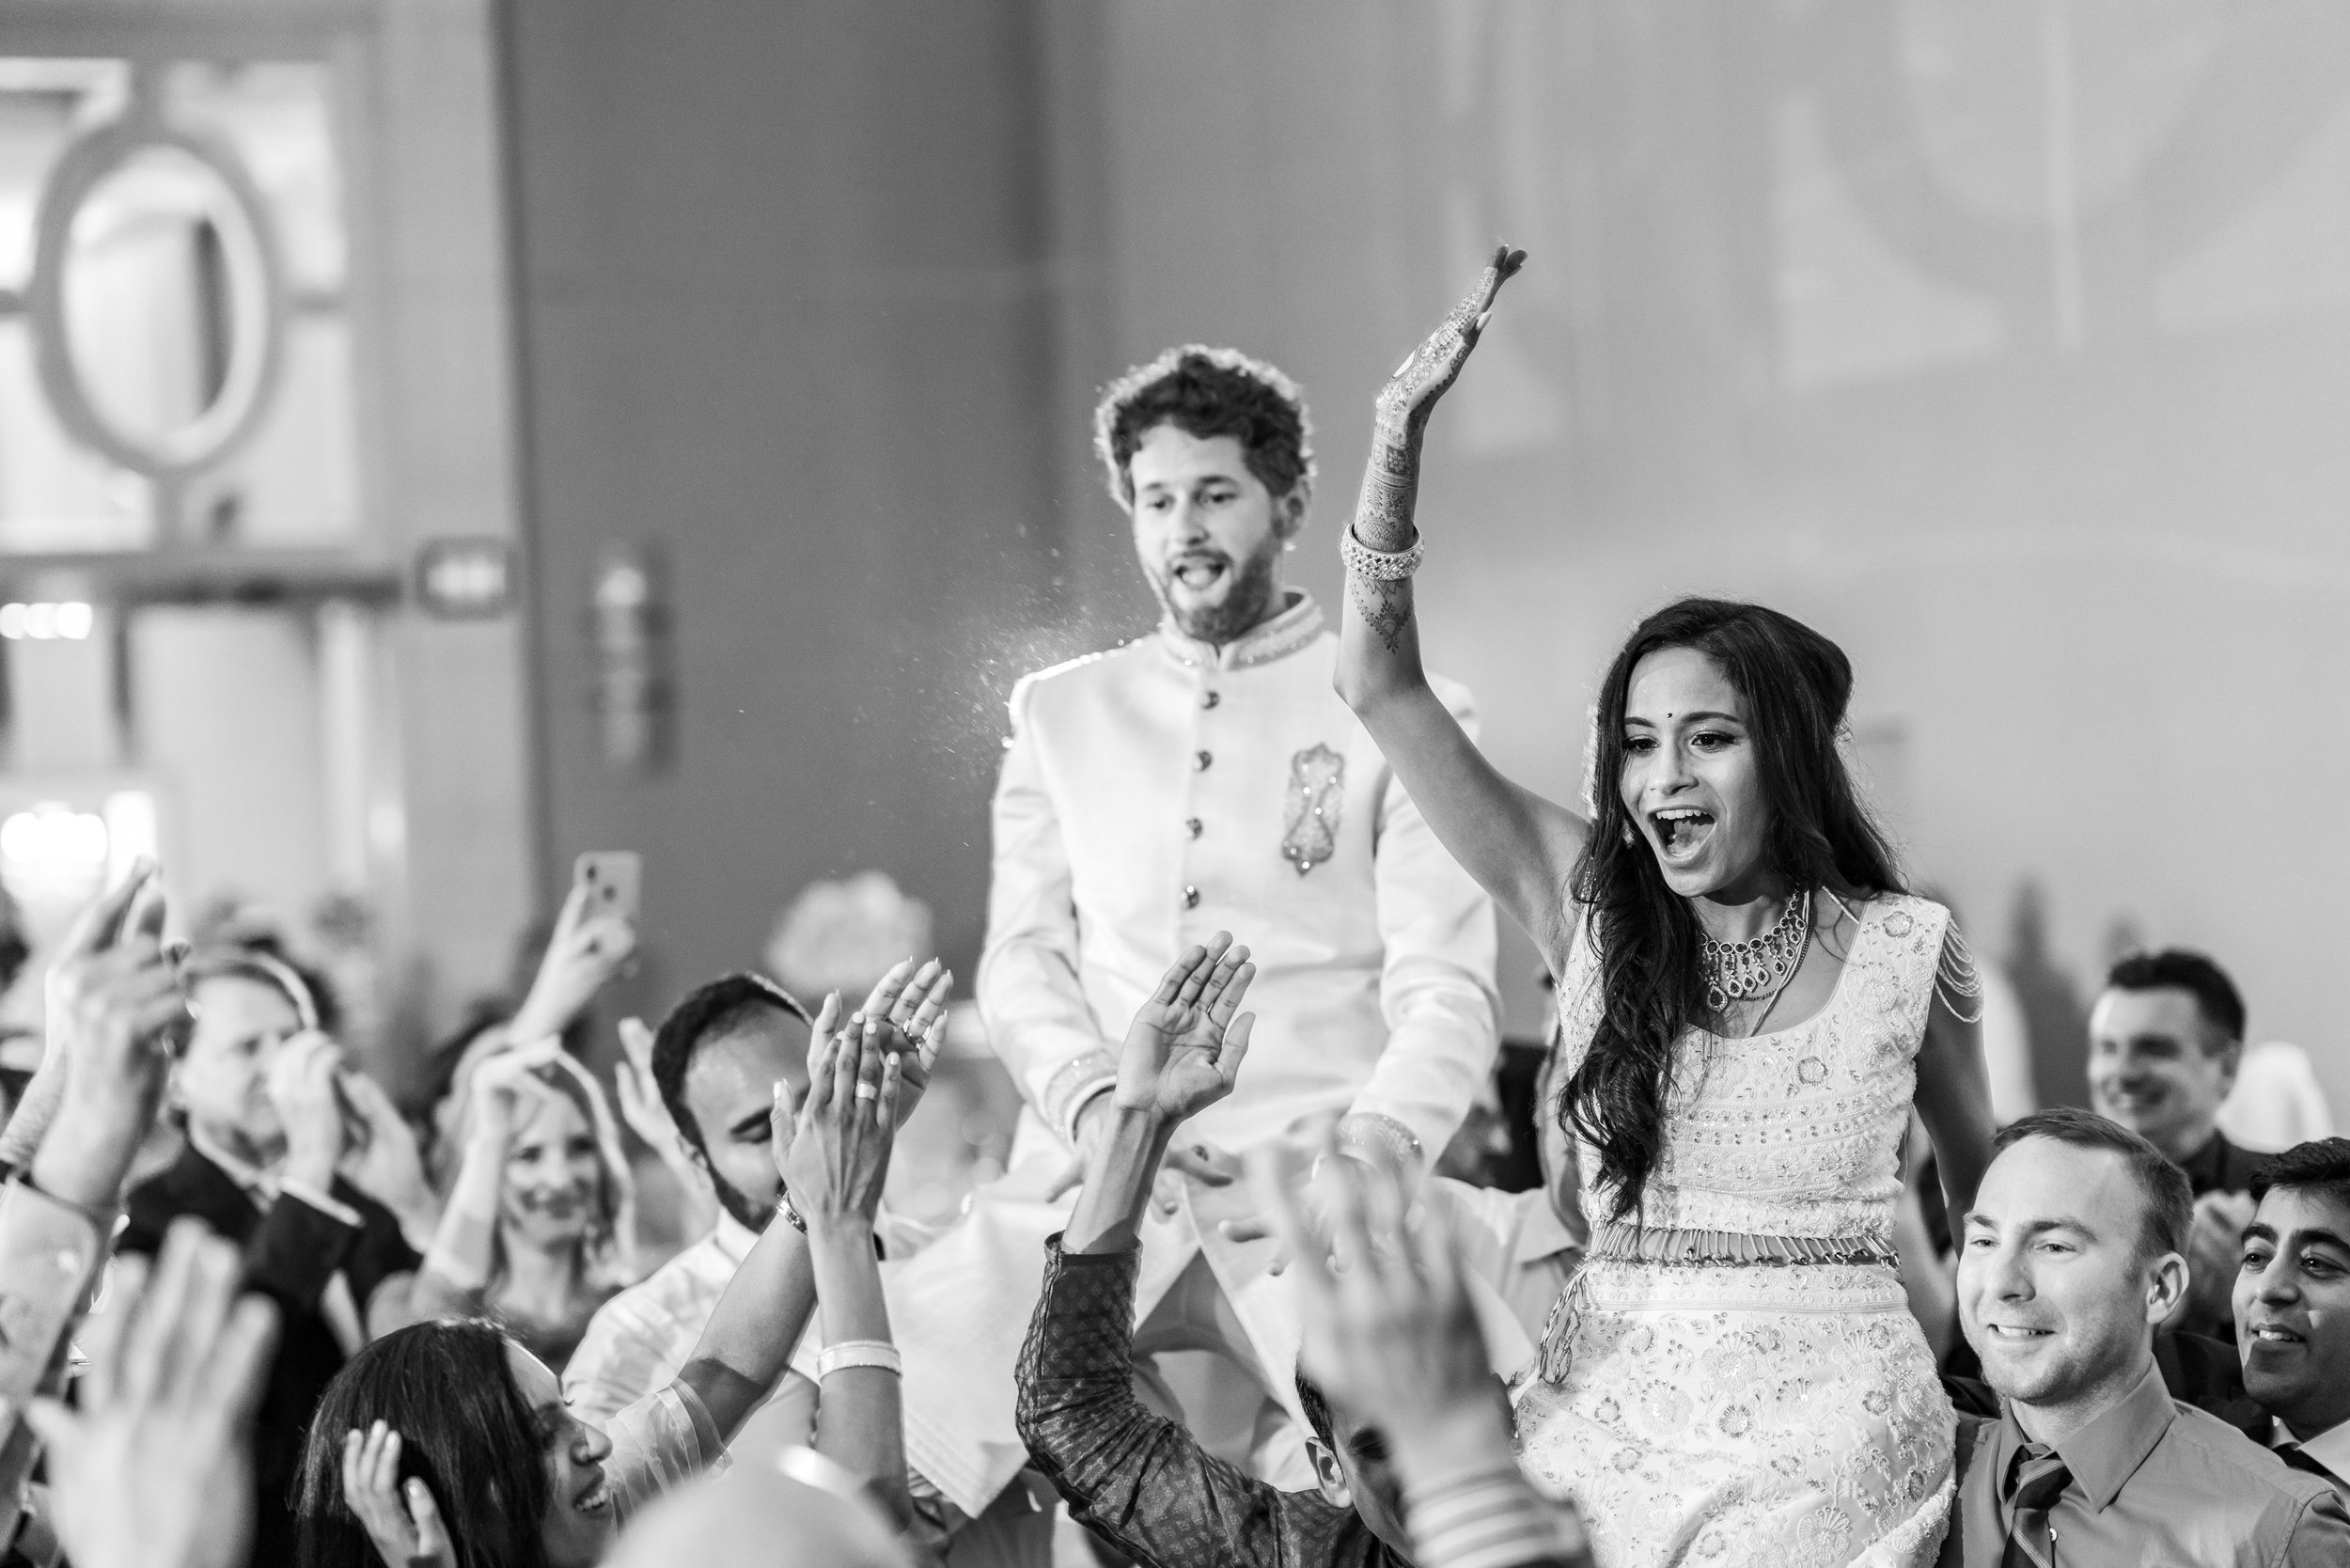 Bride and groom lifted in the crowd at indian wedding reception in maryland